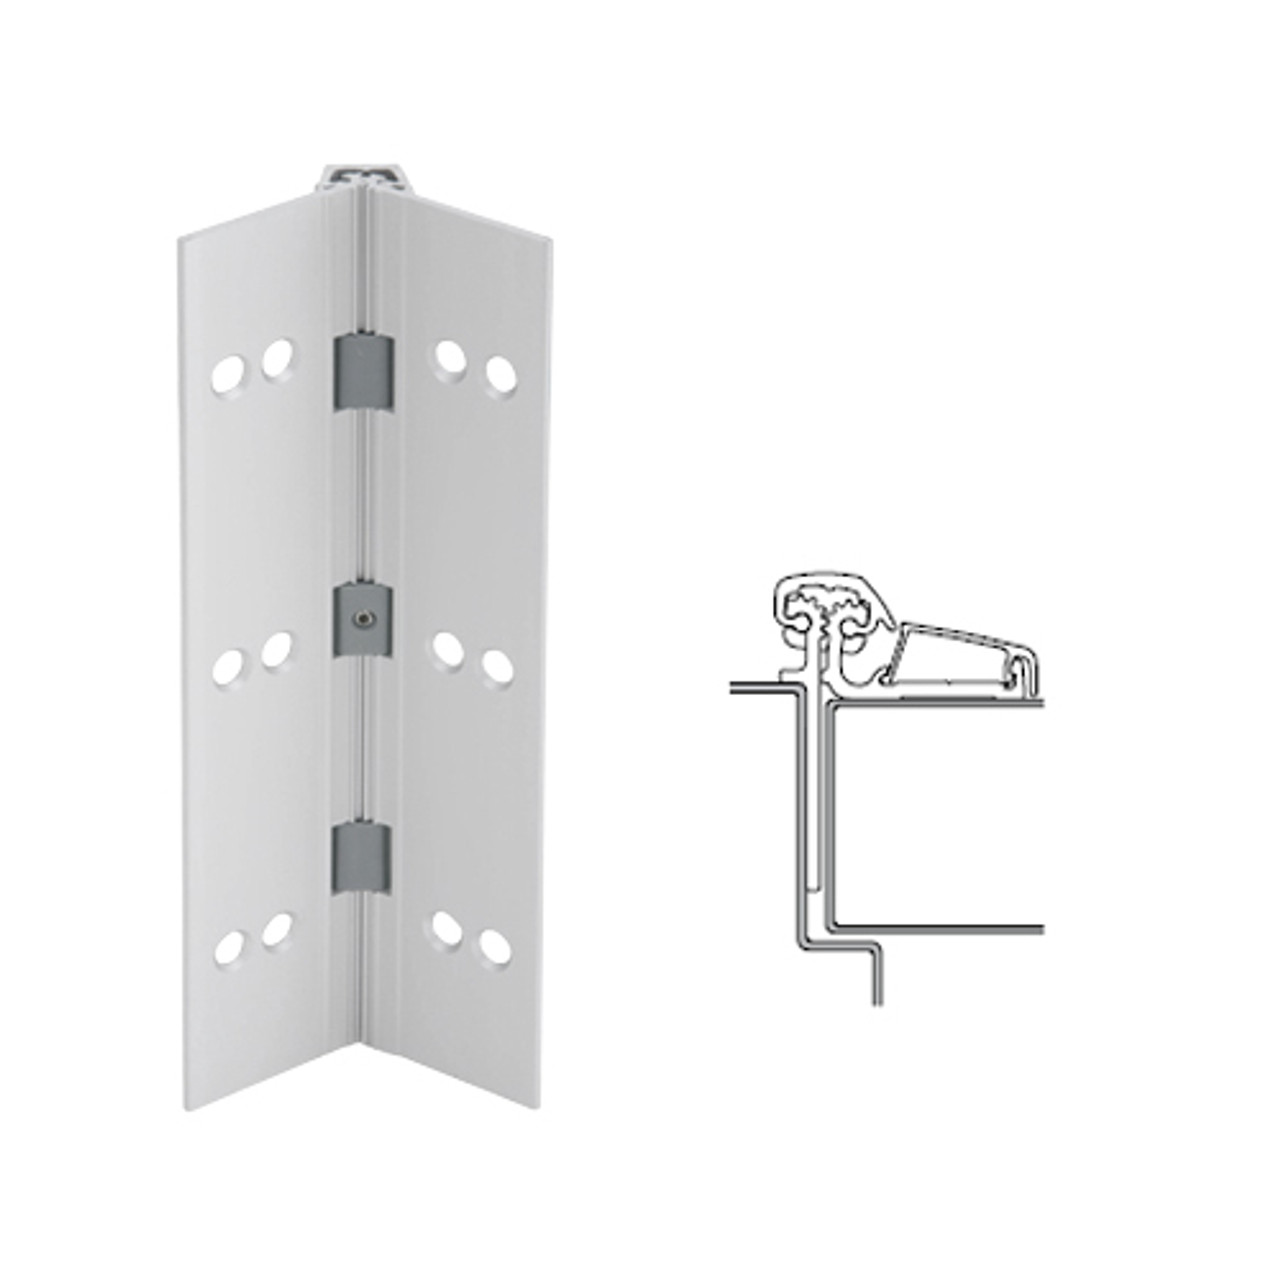 053XY-US28-120-TF IVES Adjustable Half Surface Continuous Geared Hinges with Thread Forming Screws in Satin Aluminum